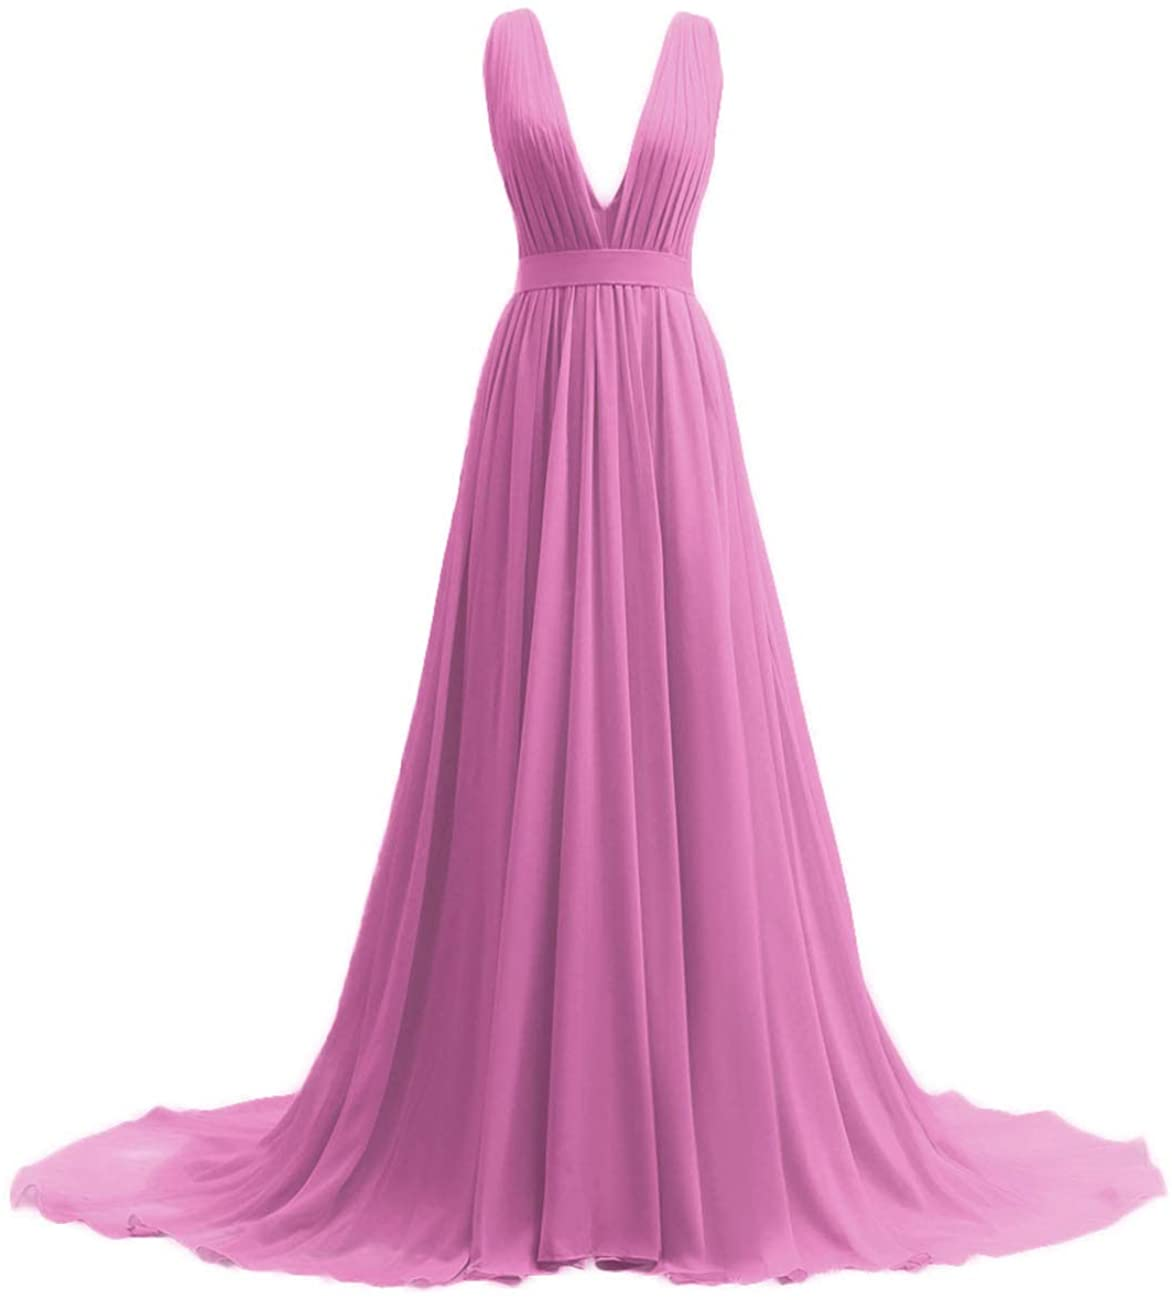 HUINI Bridesmaid Dresses V Neck Prom Dress Long Evening Gowns for Wedding A Line Chiffon